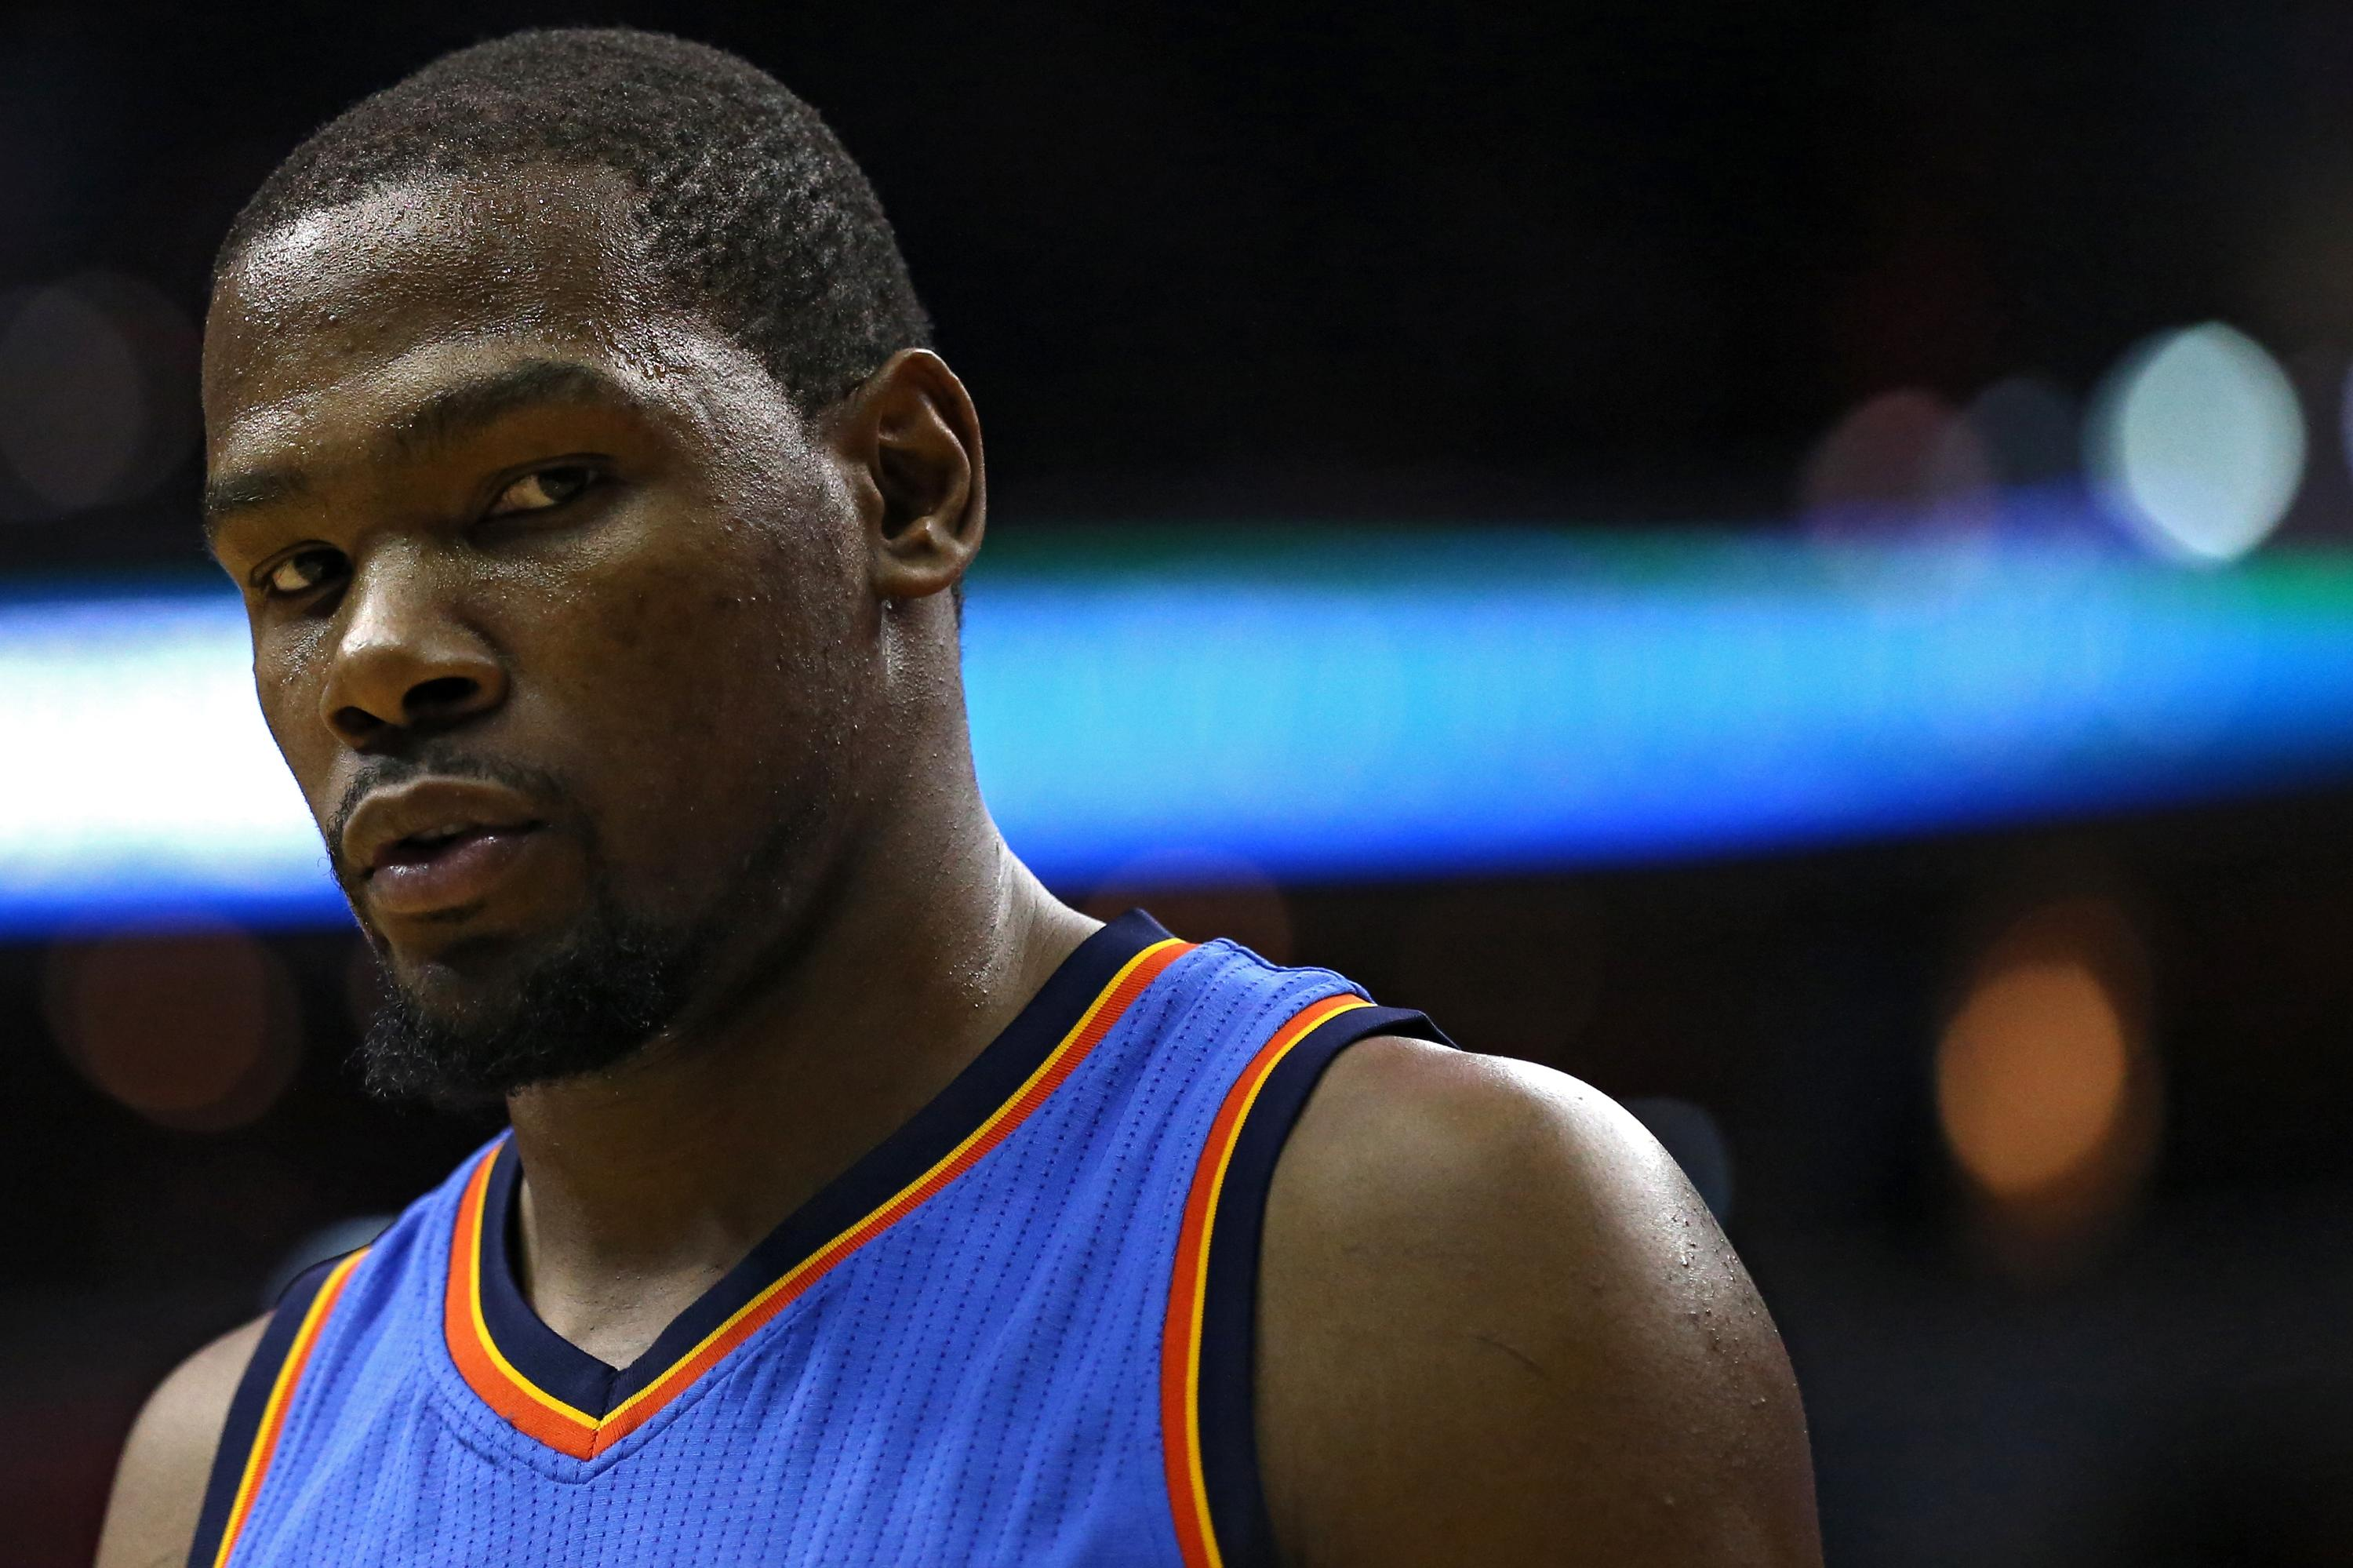 BDL 25: Kevin Durant is back to score at will and dominate headlines